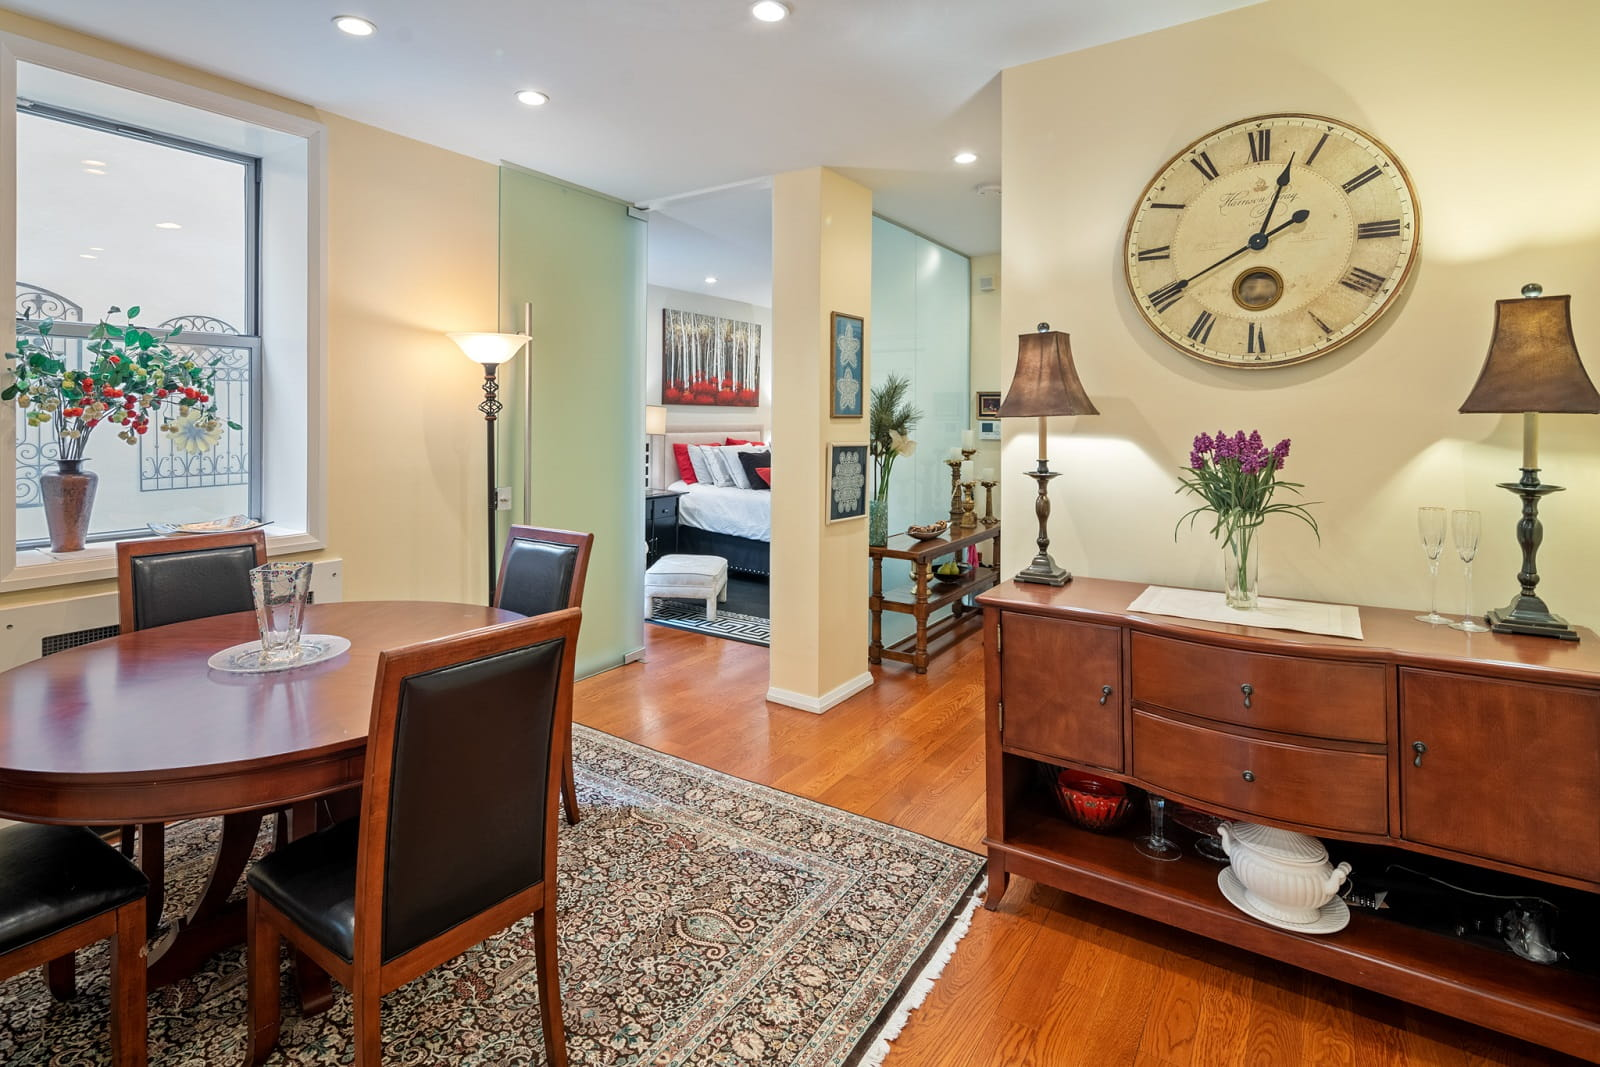 Real Estate Photography in Newyork City - NY - USA - Indoor View